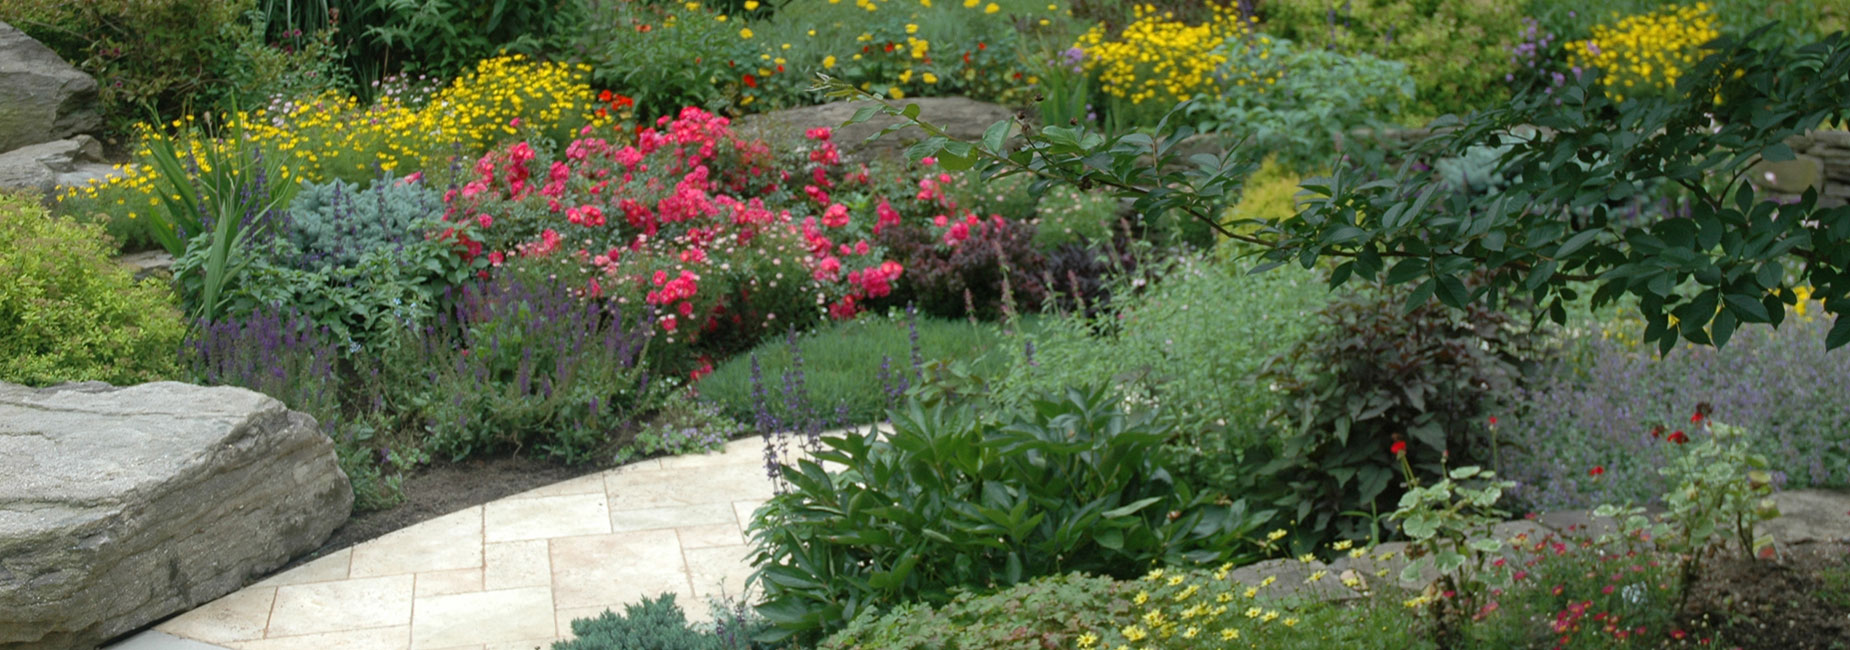 Contact Brenda Alexander, Cohesion Land Design in Kelowna, BC, offers professional landscape design services.